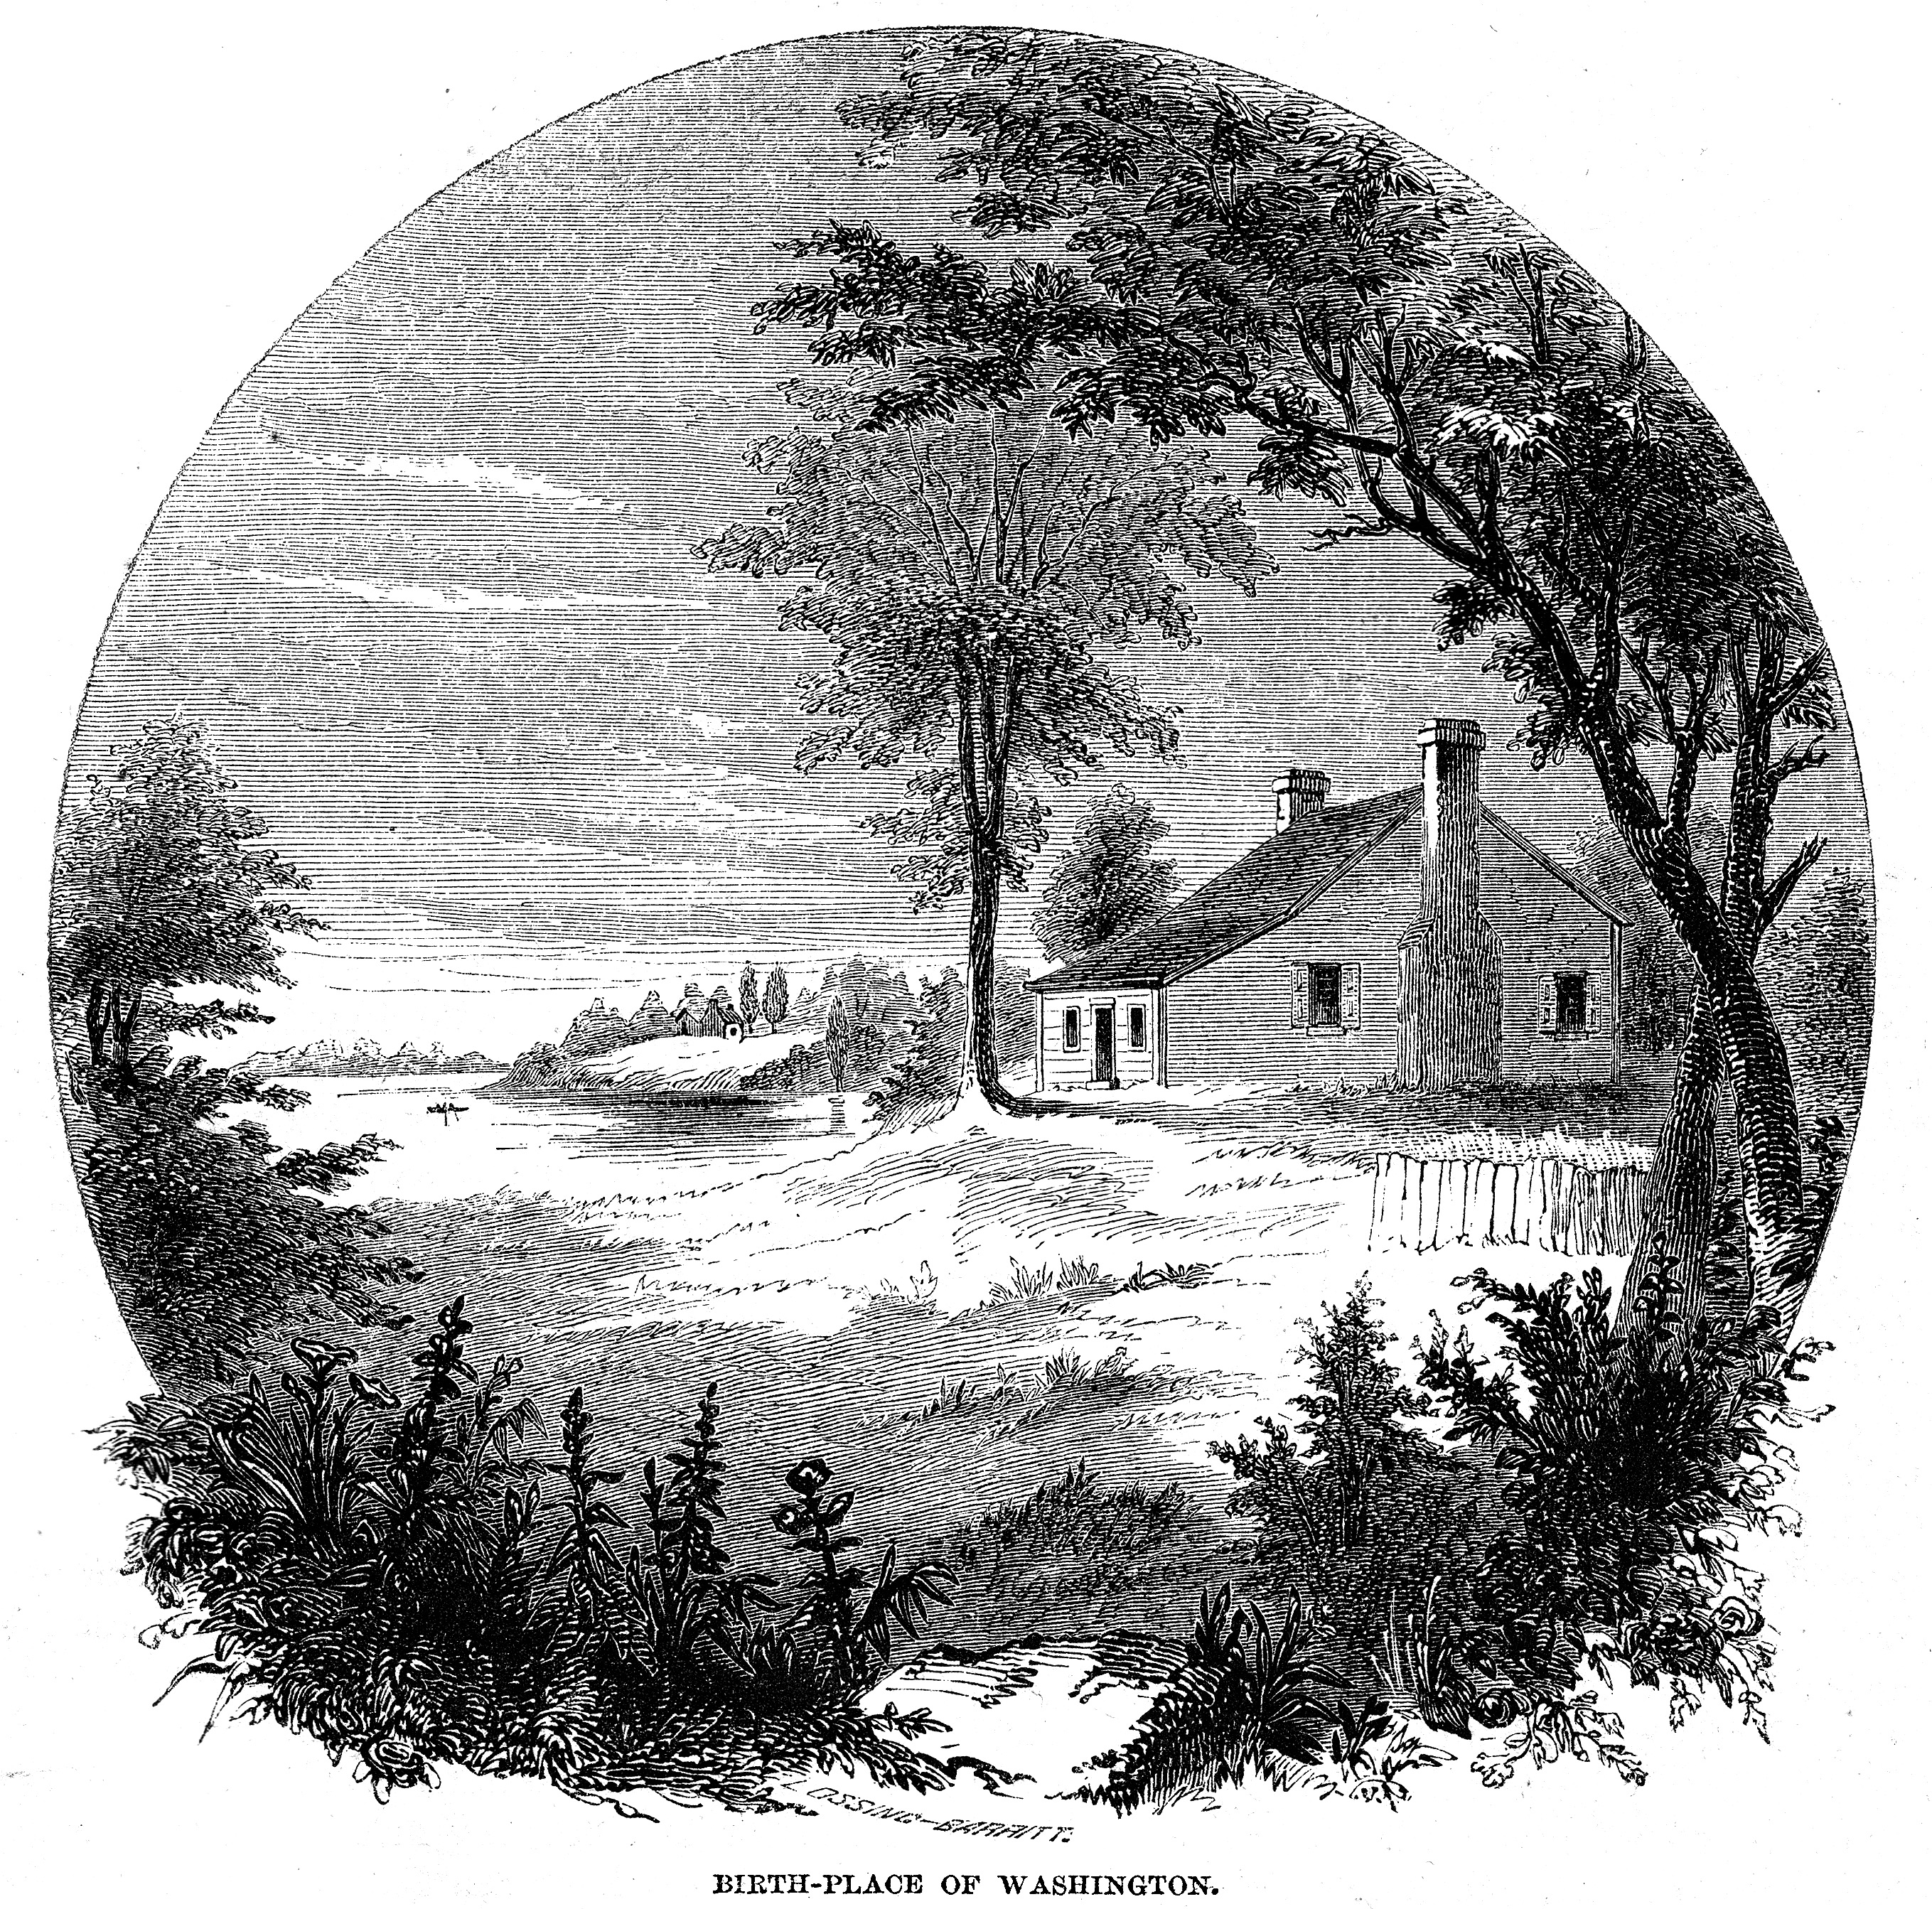 Benson J. Lossing & William Barritt: George Washington's birthplace (engraving) 1856